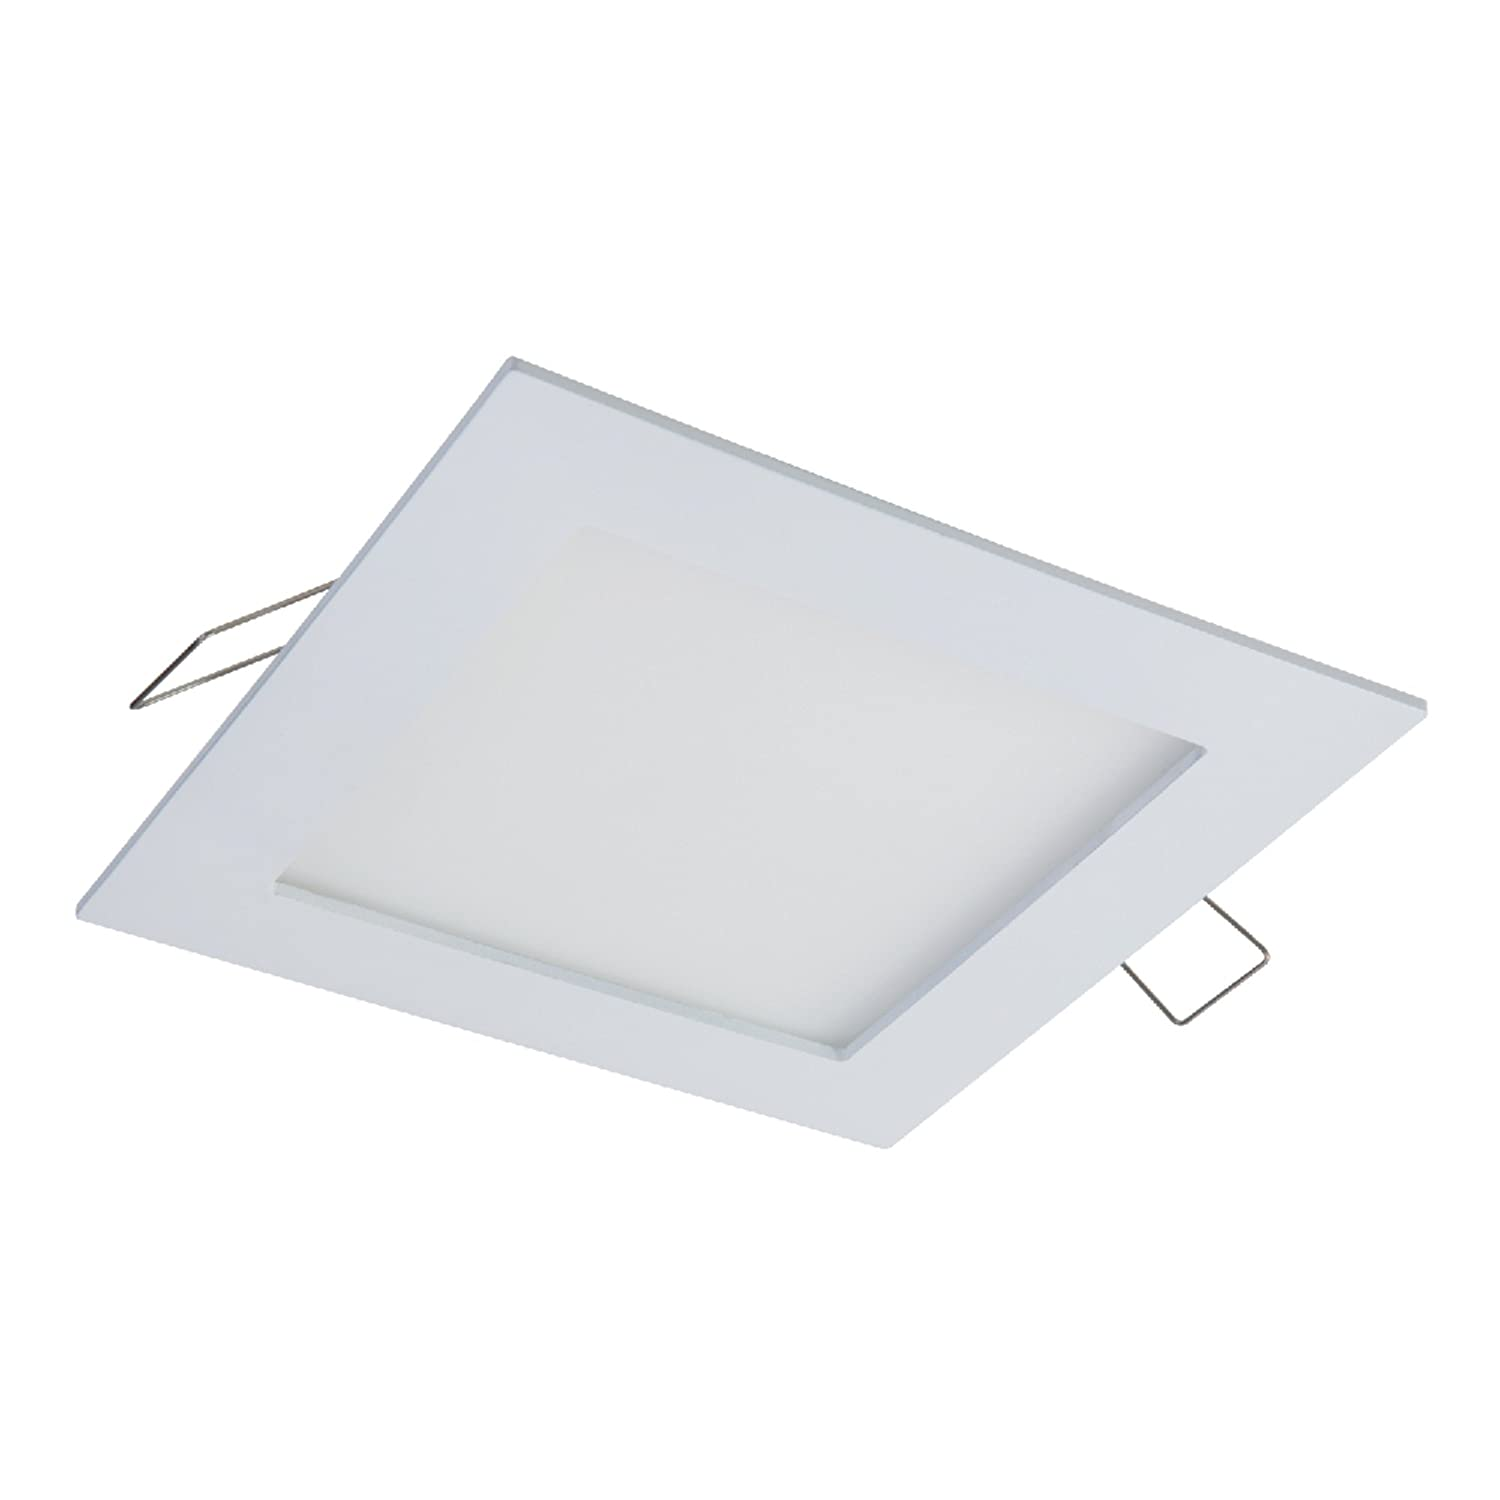 HALO SMD4R6950WHDM SMD-Dm Lens Round Integrated Led Surface Mount Recessed Downlight Trim White EATON No Can Needed 5000K Daylight, 4.85 In